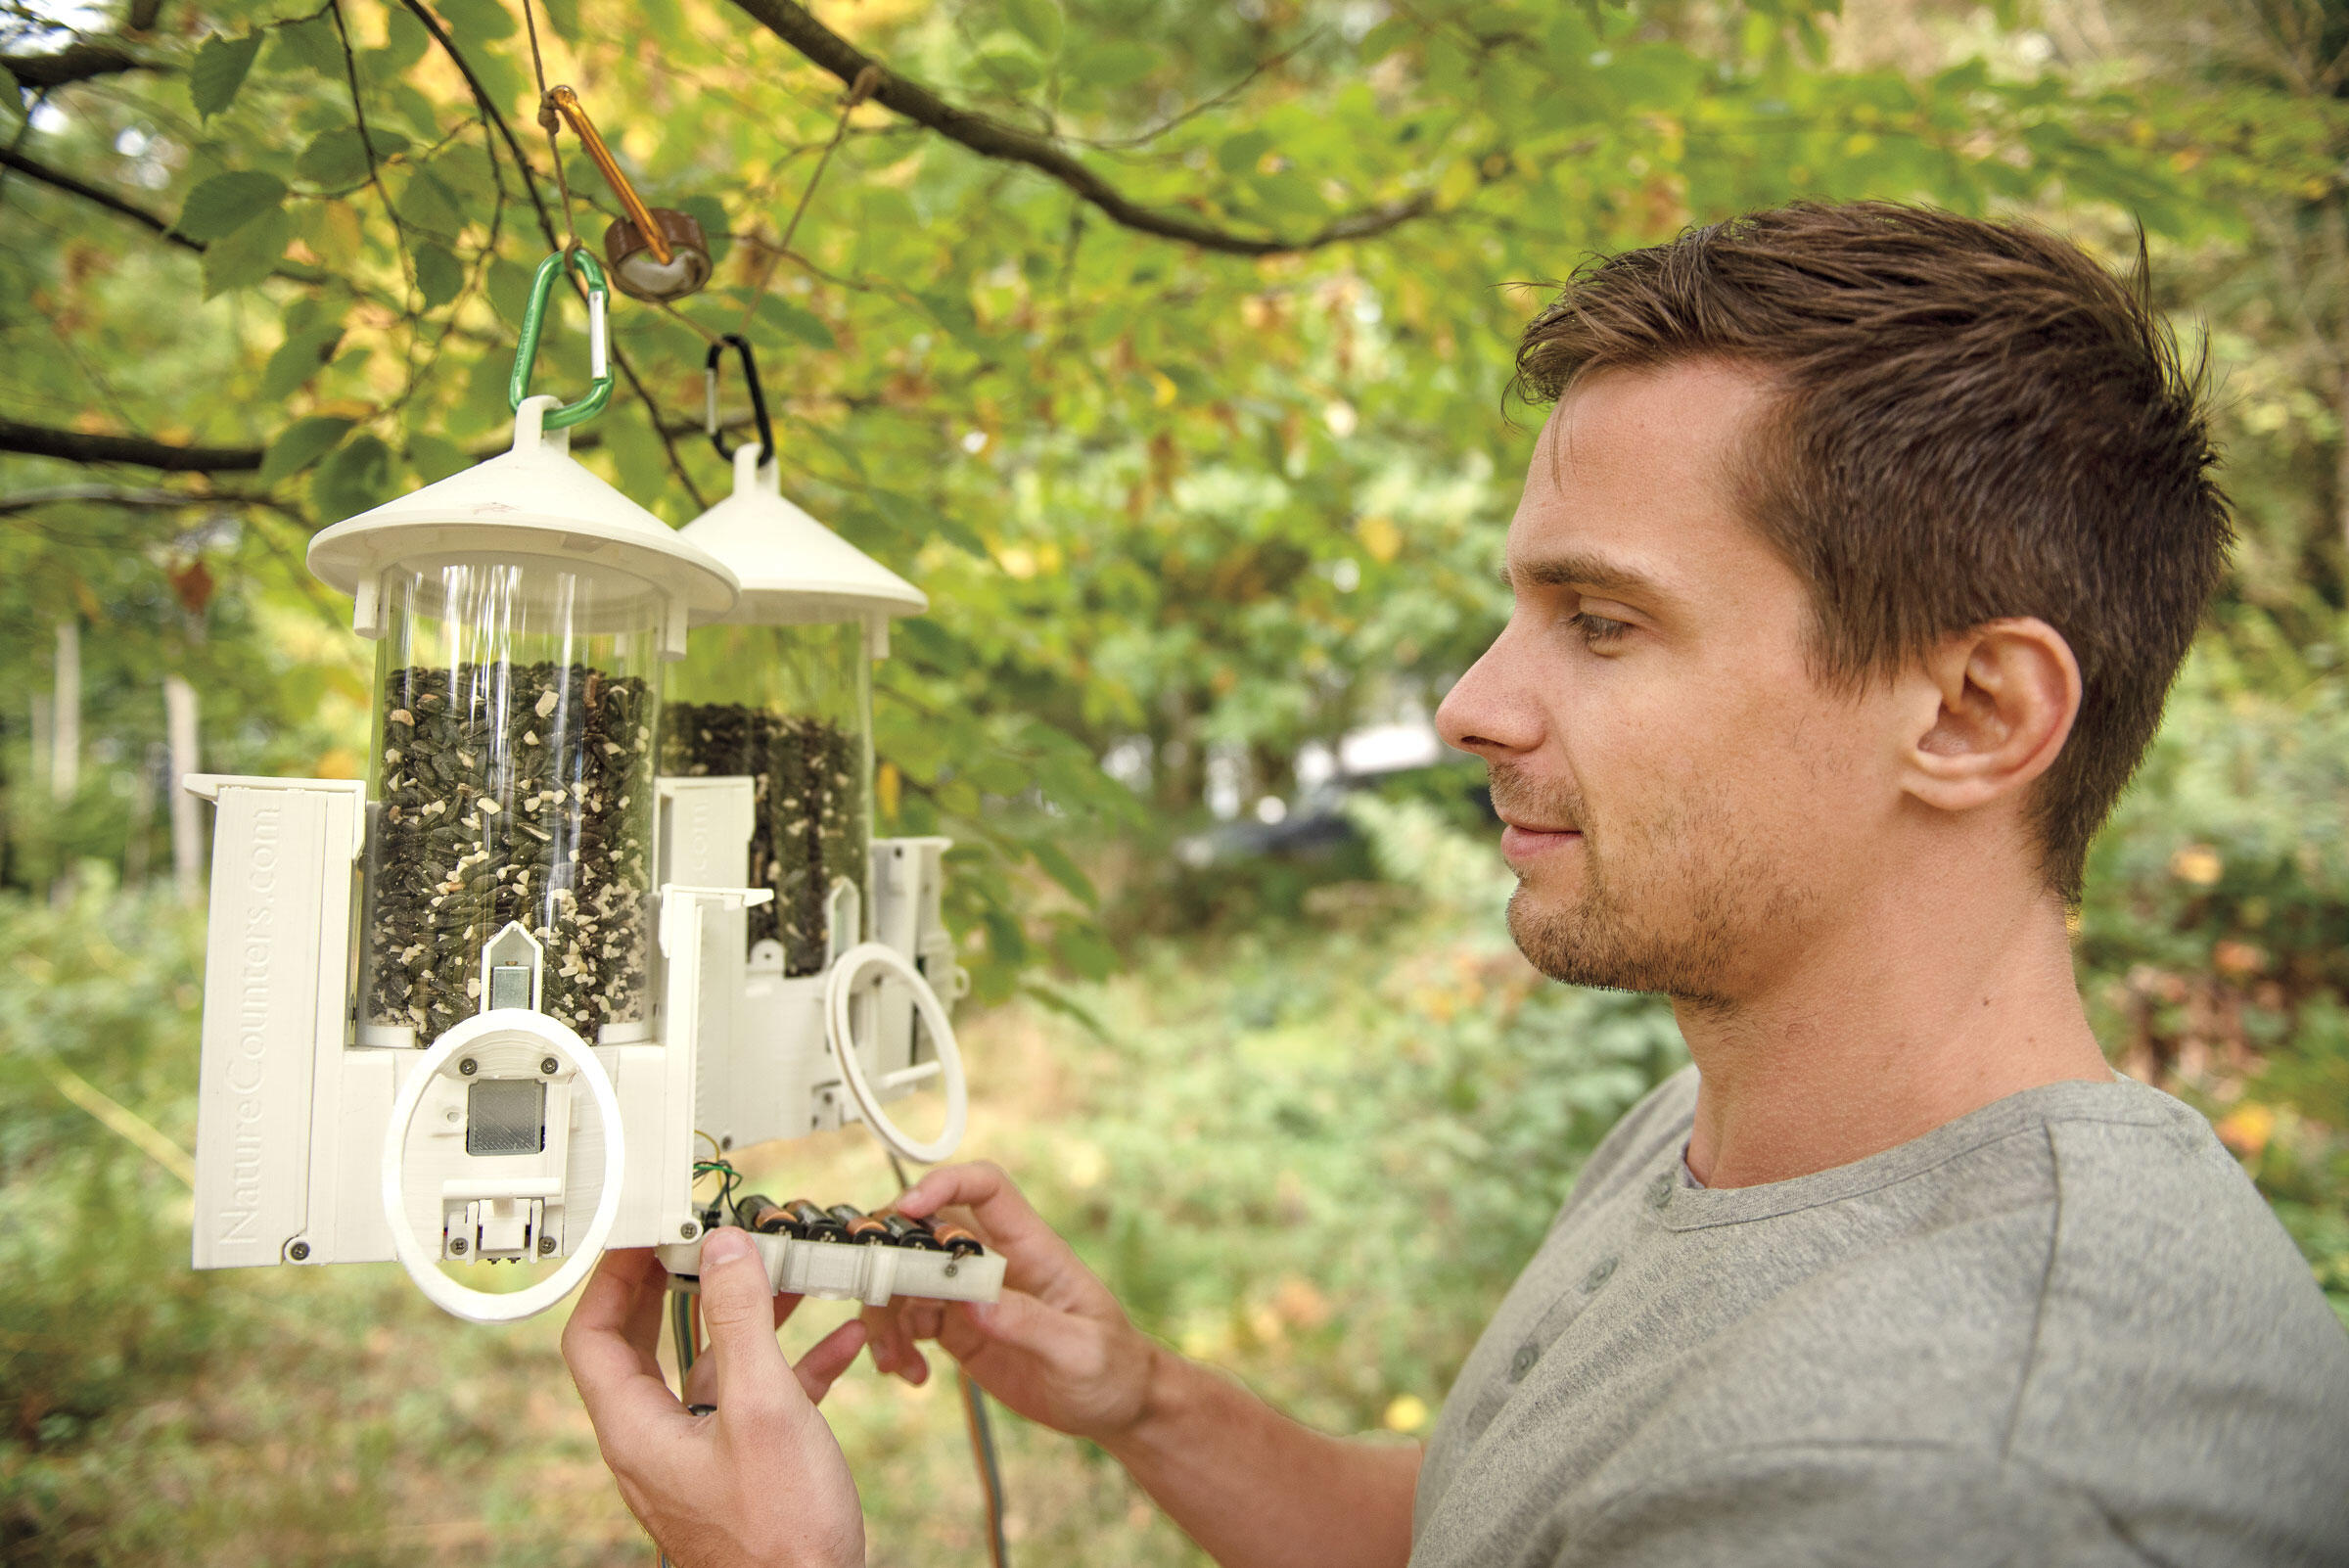 Josh Firth tinkers with cooperation feeders. Designed to open only when two specific birds arrive simultaneously, the gadgets help reveal the conditions under which individuals work together. Sam Hobson